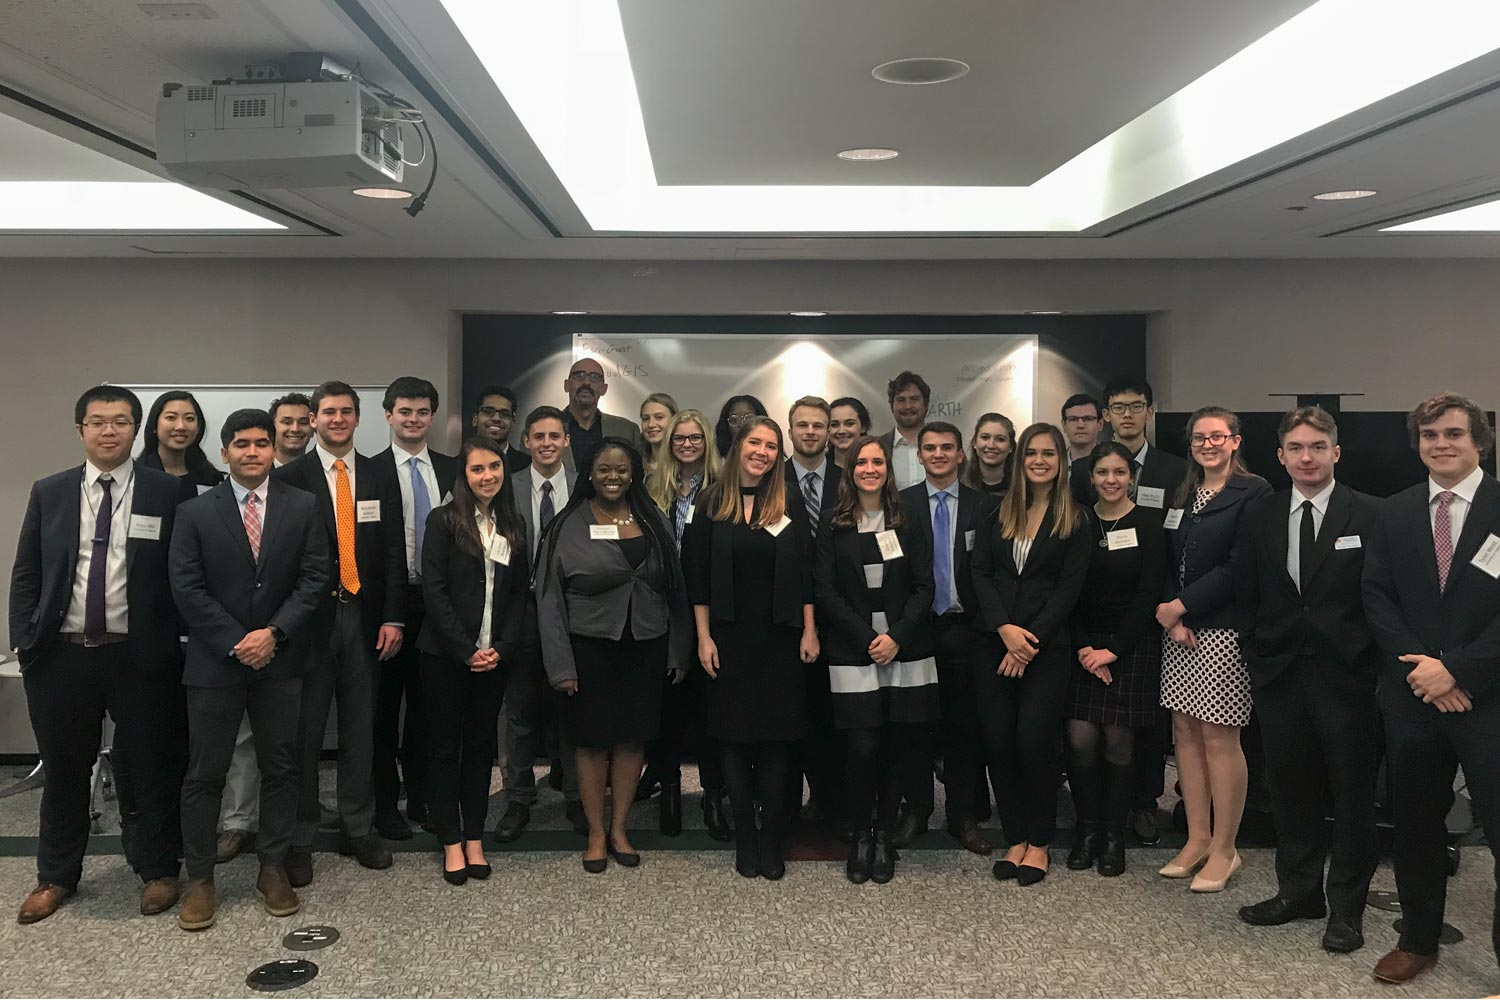 Students enrolled in the UVA Career Center's Washington, D.C. lab spent their January term visiting companies in the nation's capital and learning from them in the classroom.